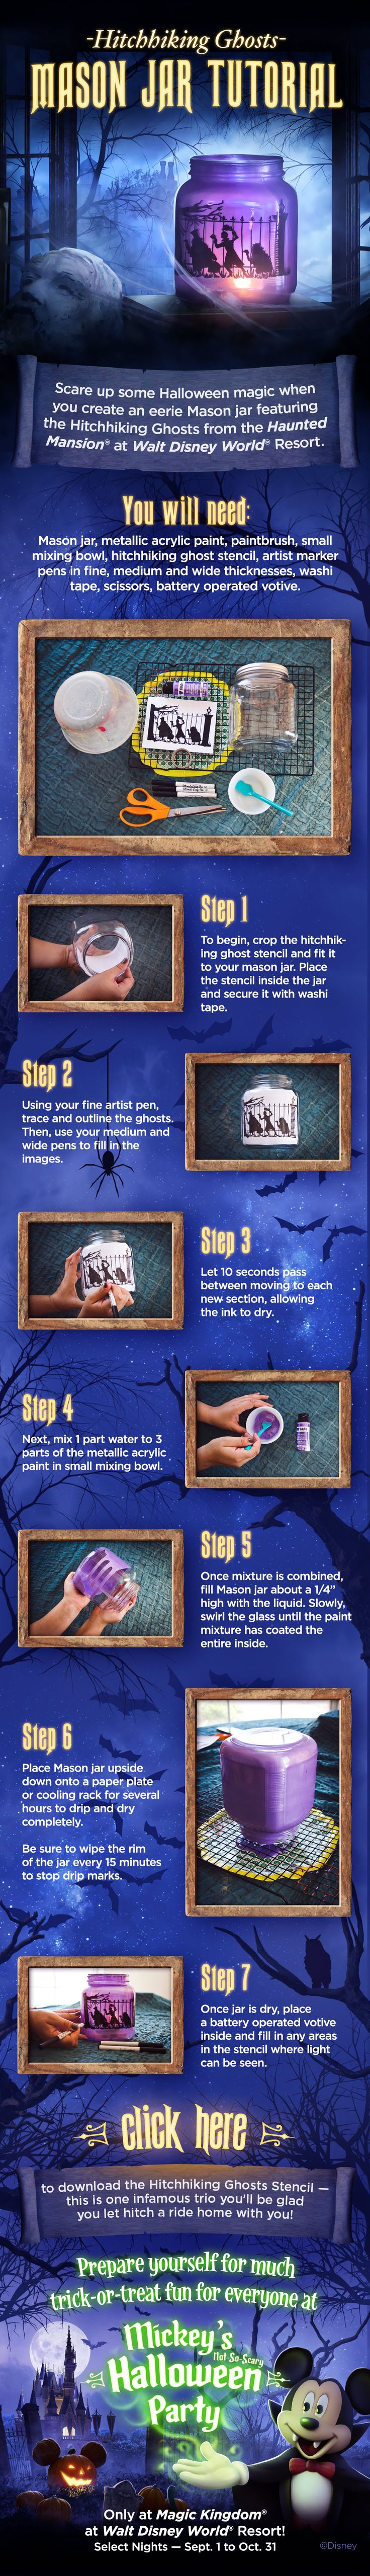 Diy halloween ghost3 - Haunted Mansion Hitchhiking Ghost Diy Mason Jar Tutorial From Walt Disney World